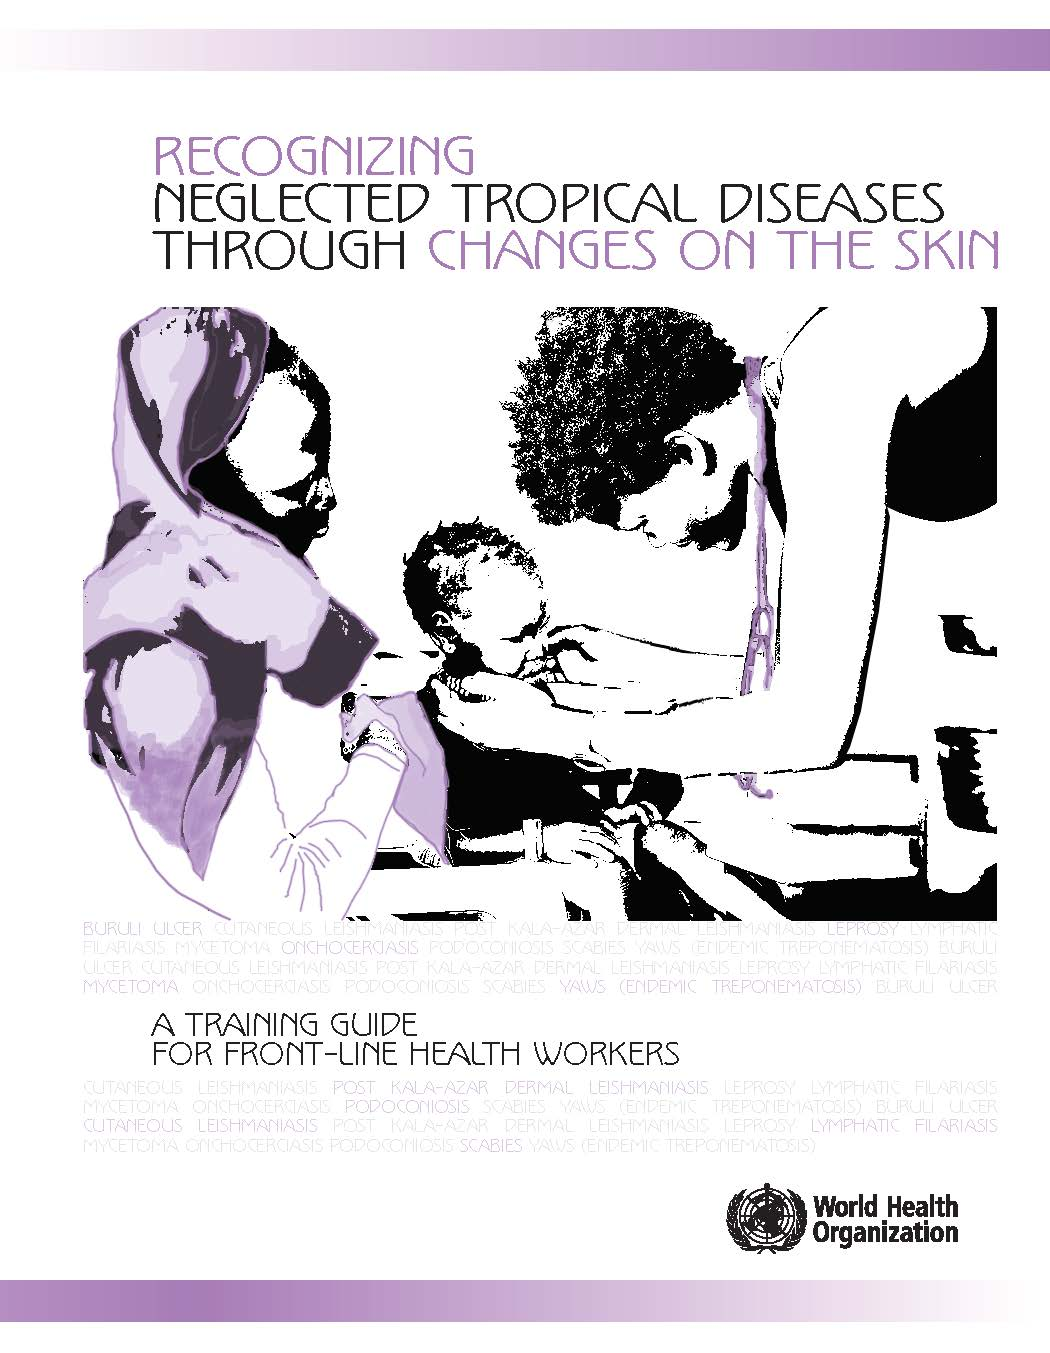 Recognizing Neglected Tropical Diseases Through Changes On The Skin